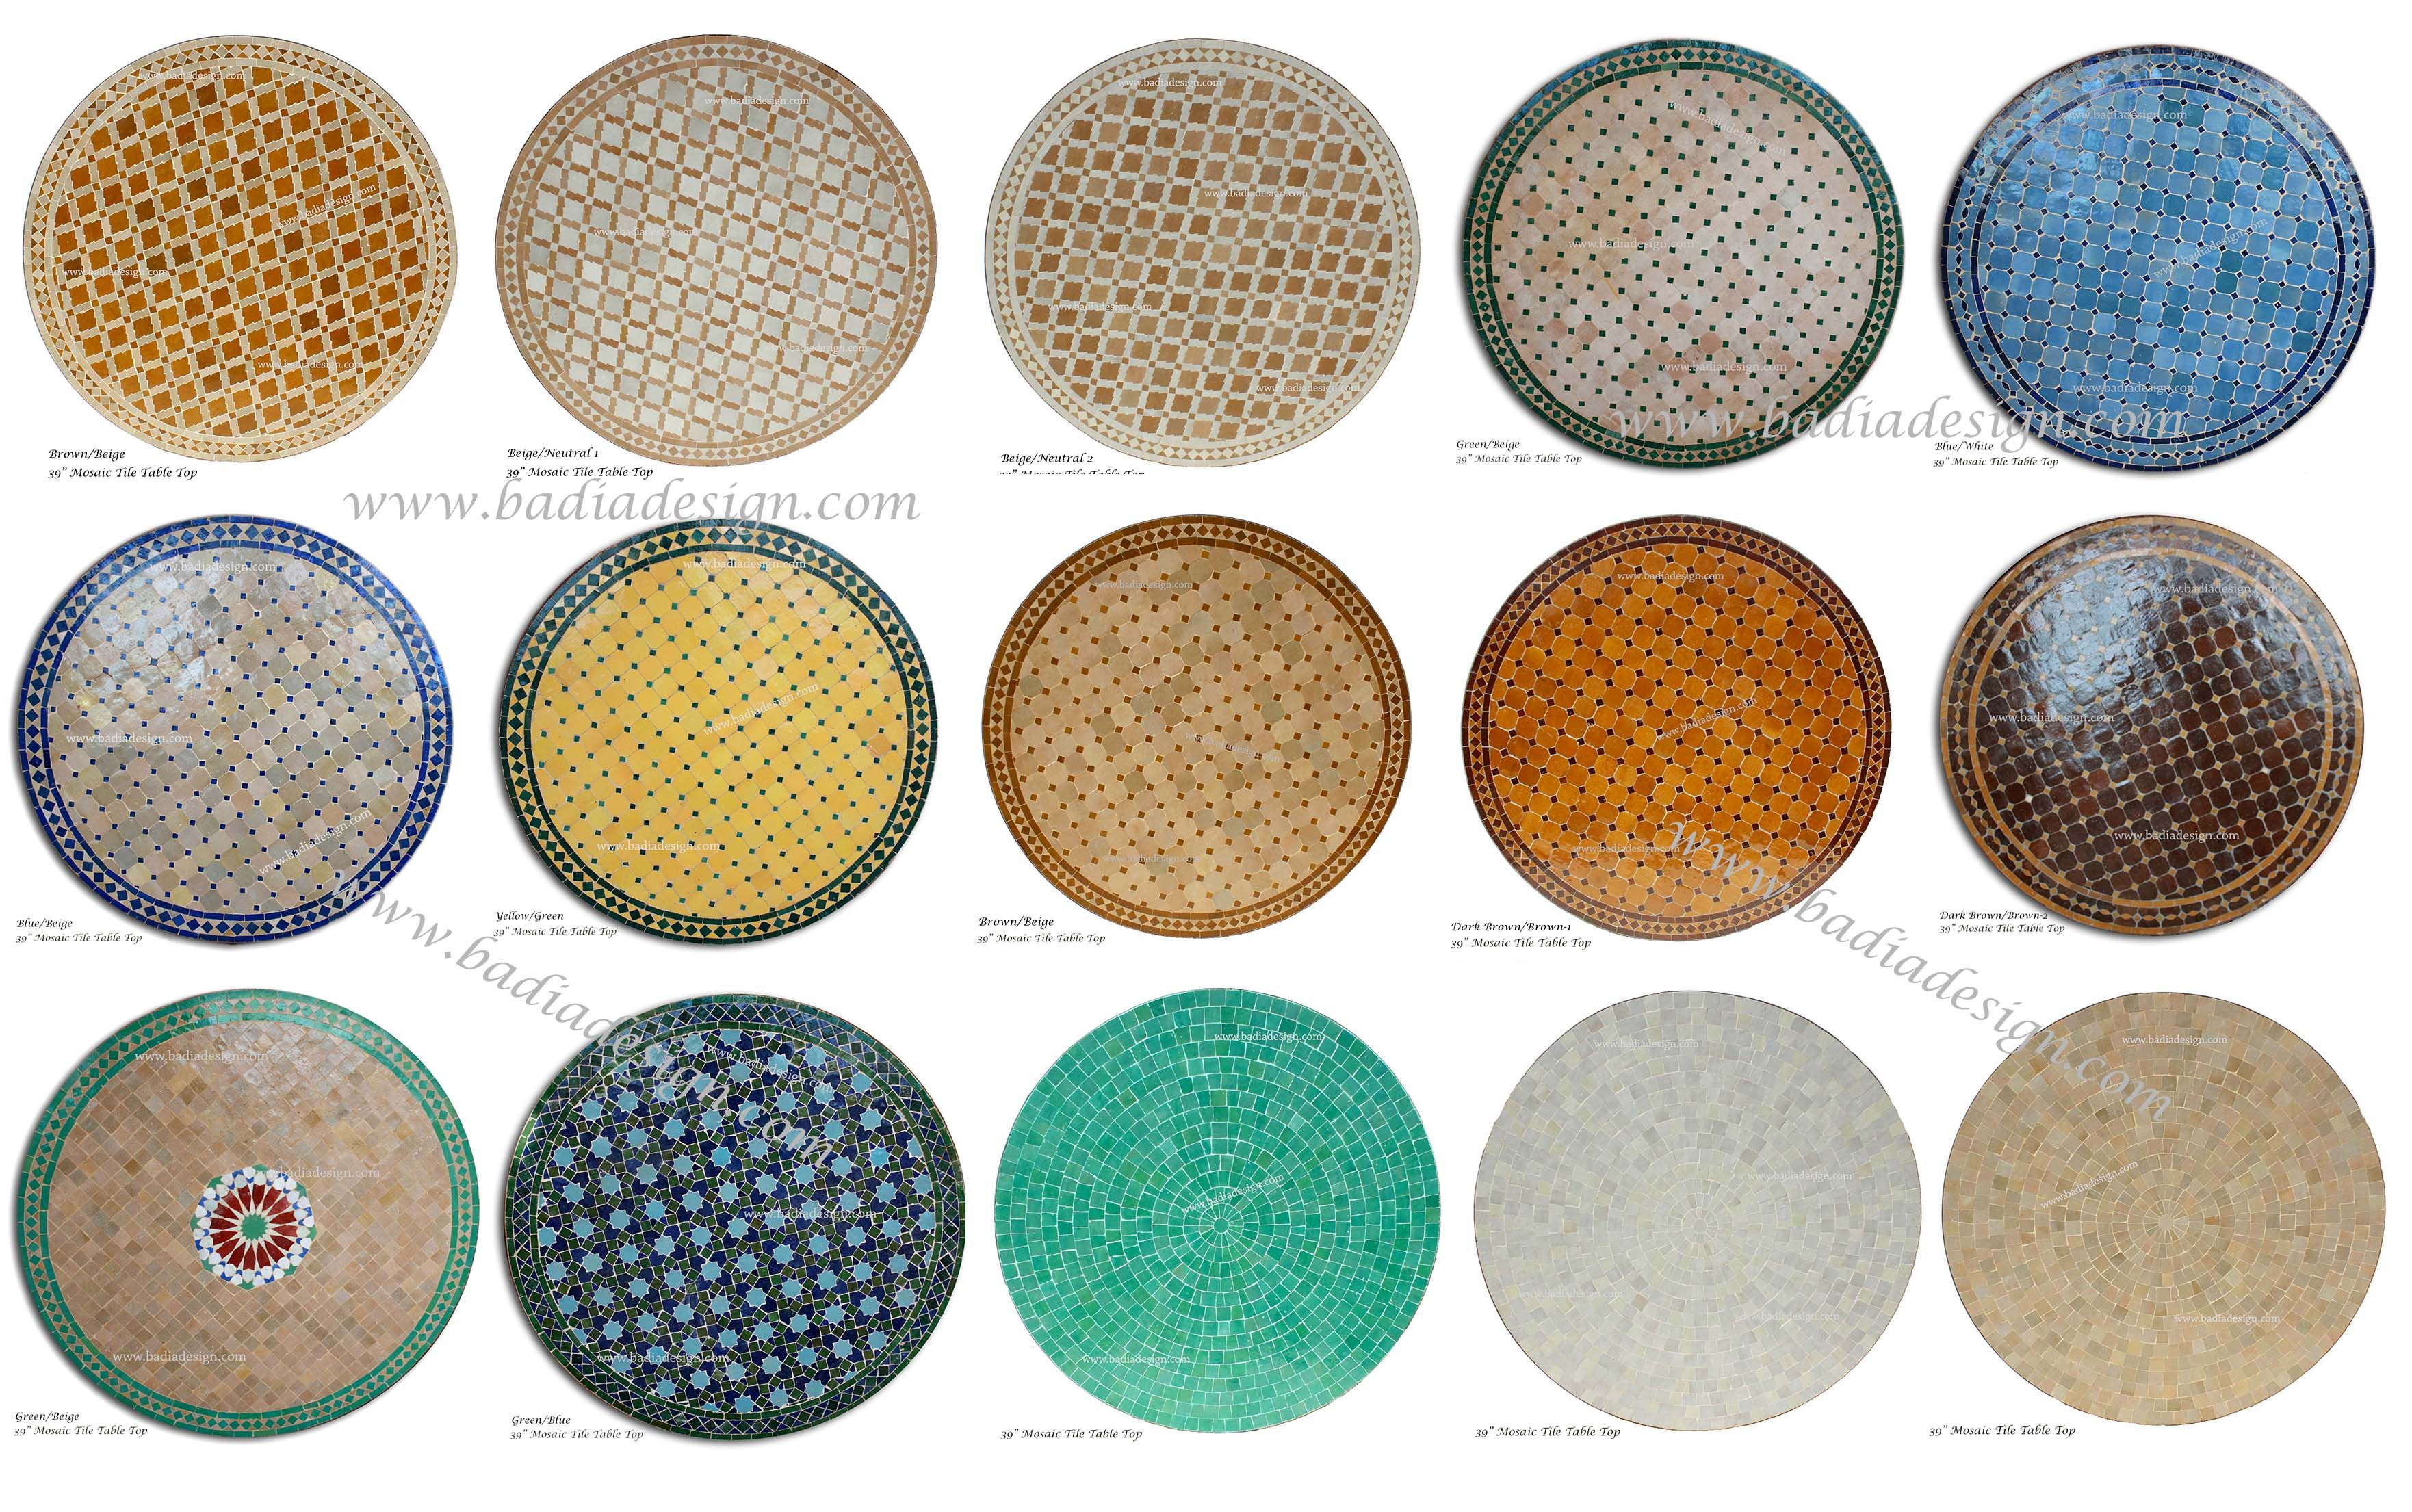 Tiled Round Tables Google Search